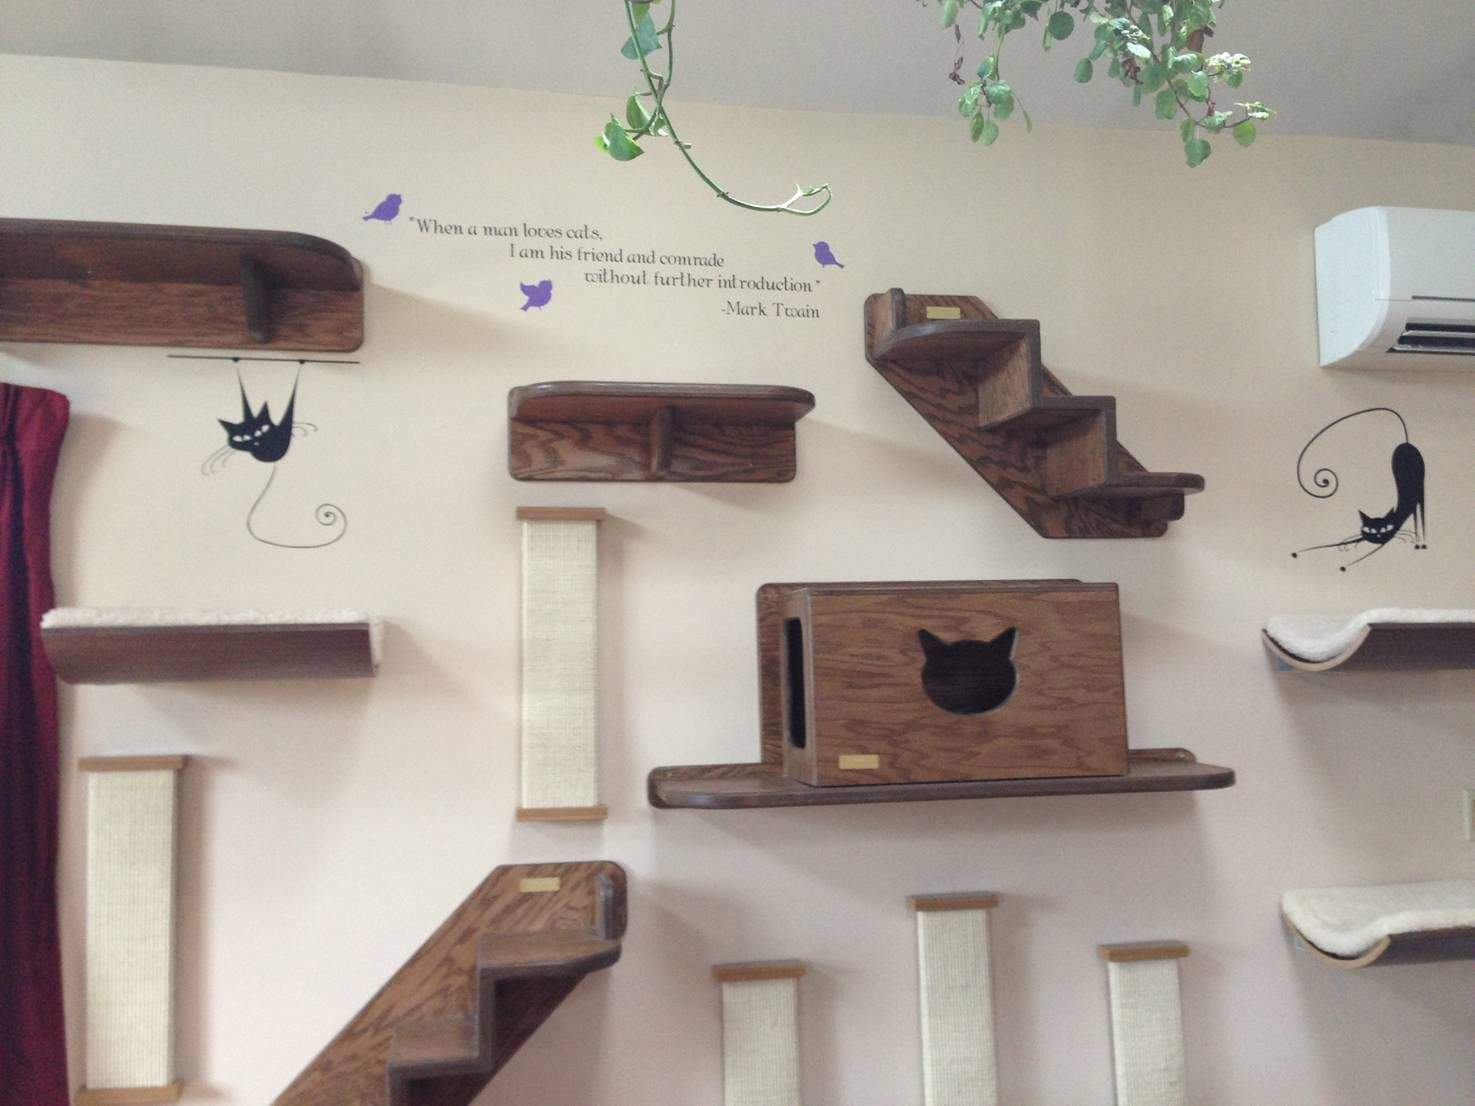 Adorable diy projects for cat lovers cat wall furniture